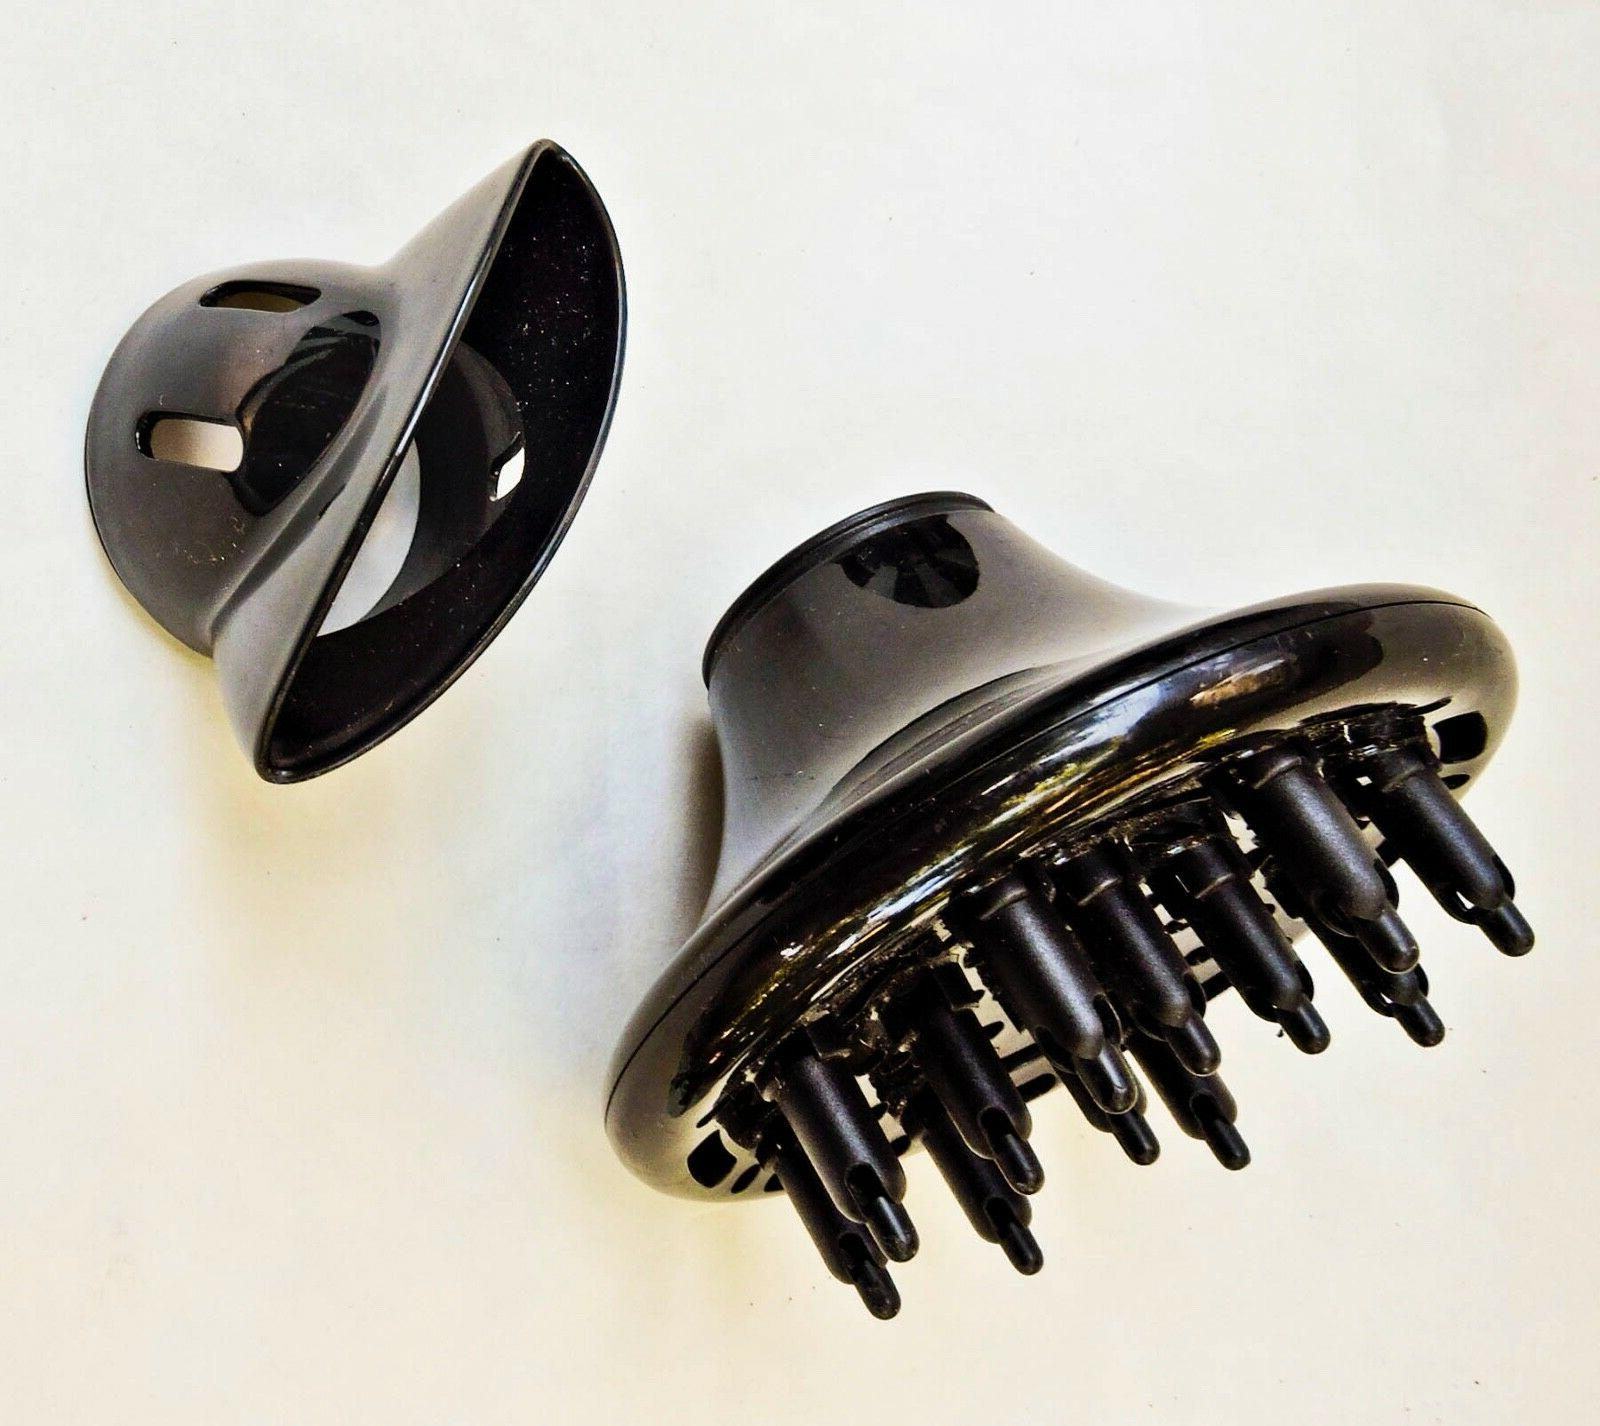 VIDAL SASSOON HAIR DRYER ATTACHMENTS FINGER DIFFUSER AND STY